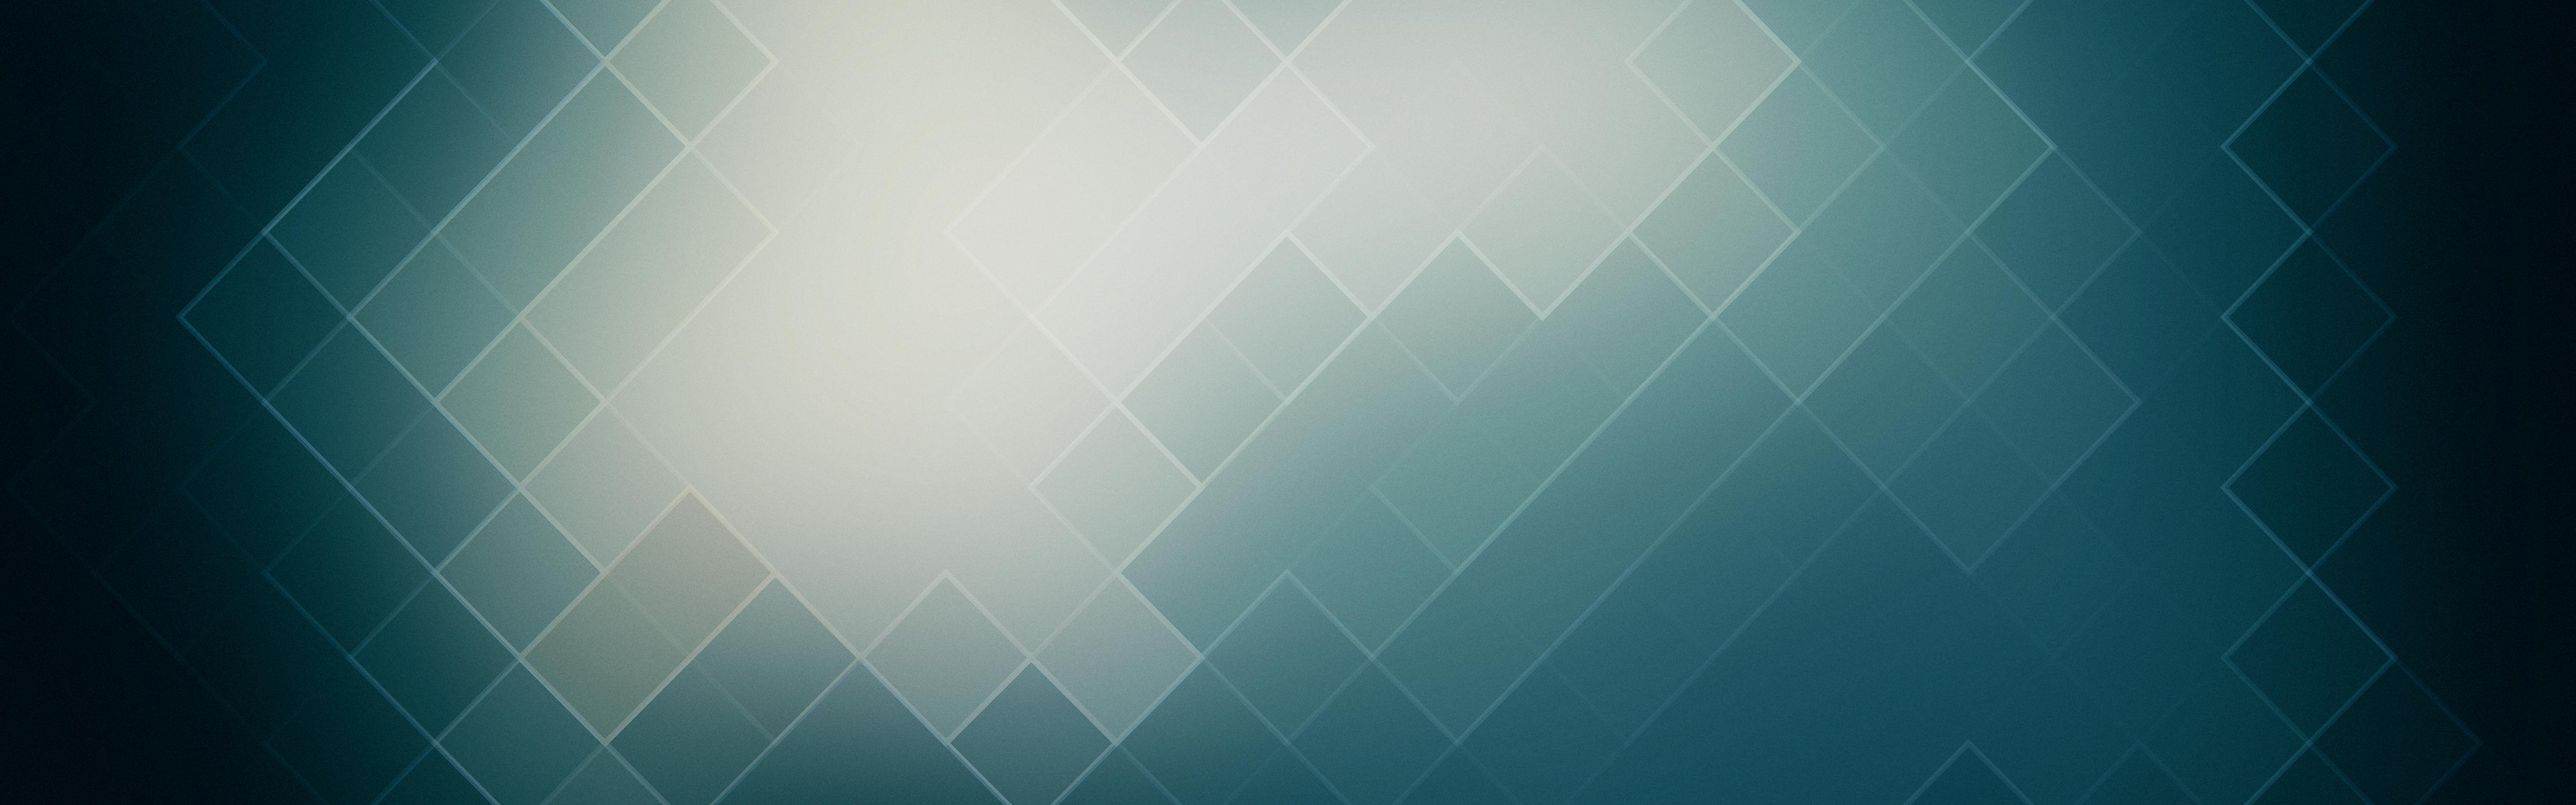 Minimalist Abstract Wallpapers Top Free Minimalist Abstract Backgrounds Wallpaperaccess